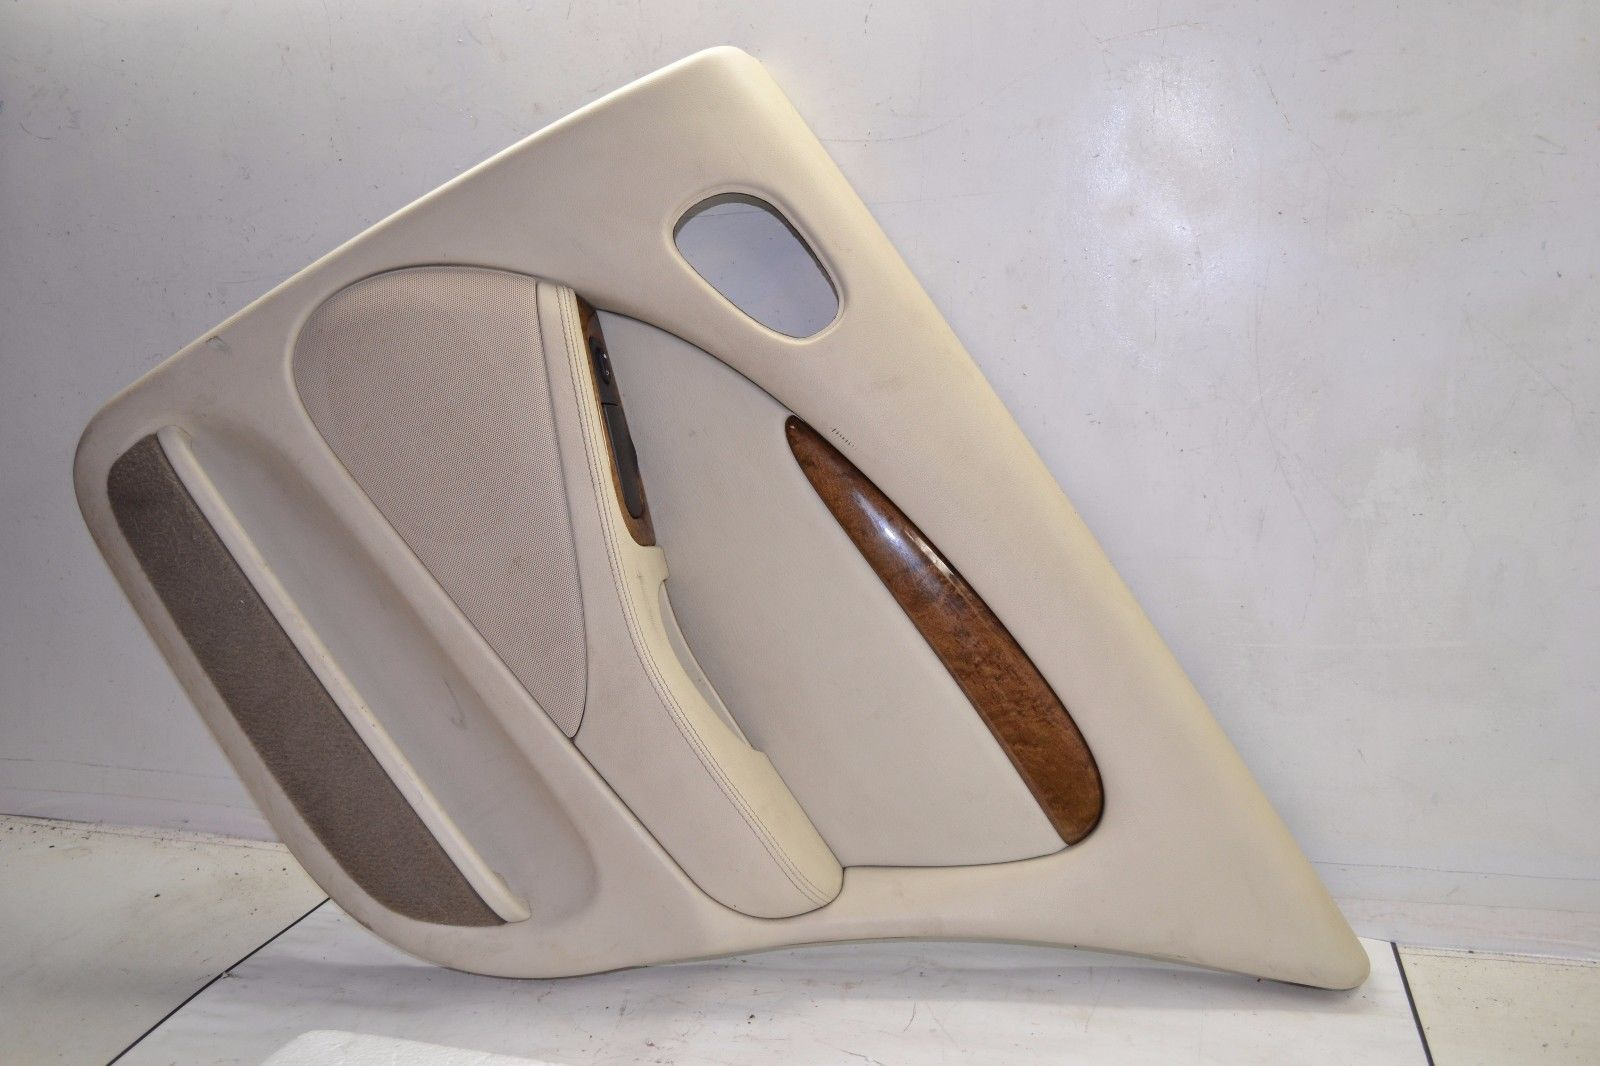 2003-2008 JAGUAR S-TYPE REAR RIGHT PASSENGER INTERIOR DOOR COVER PANEL SEL